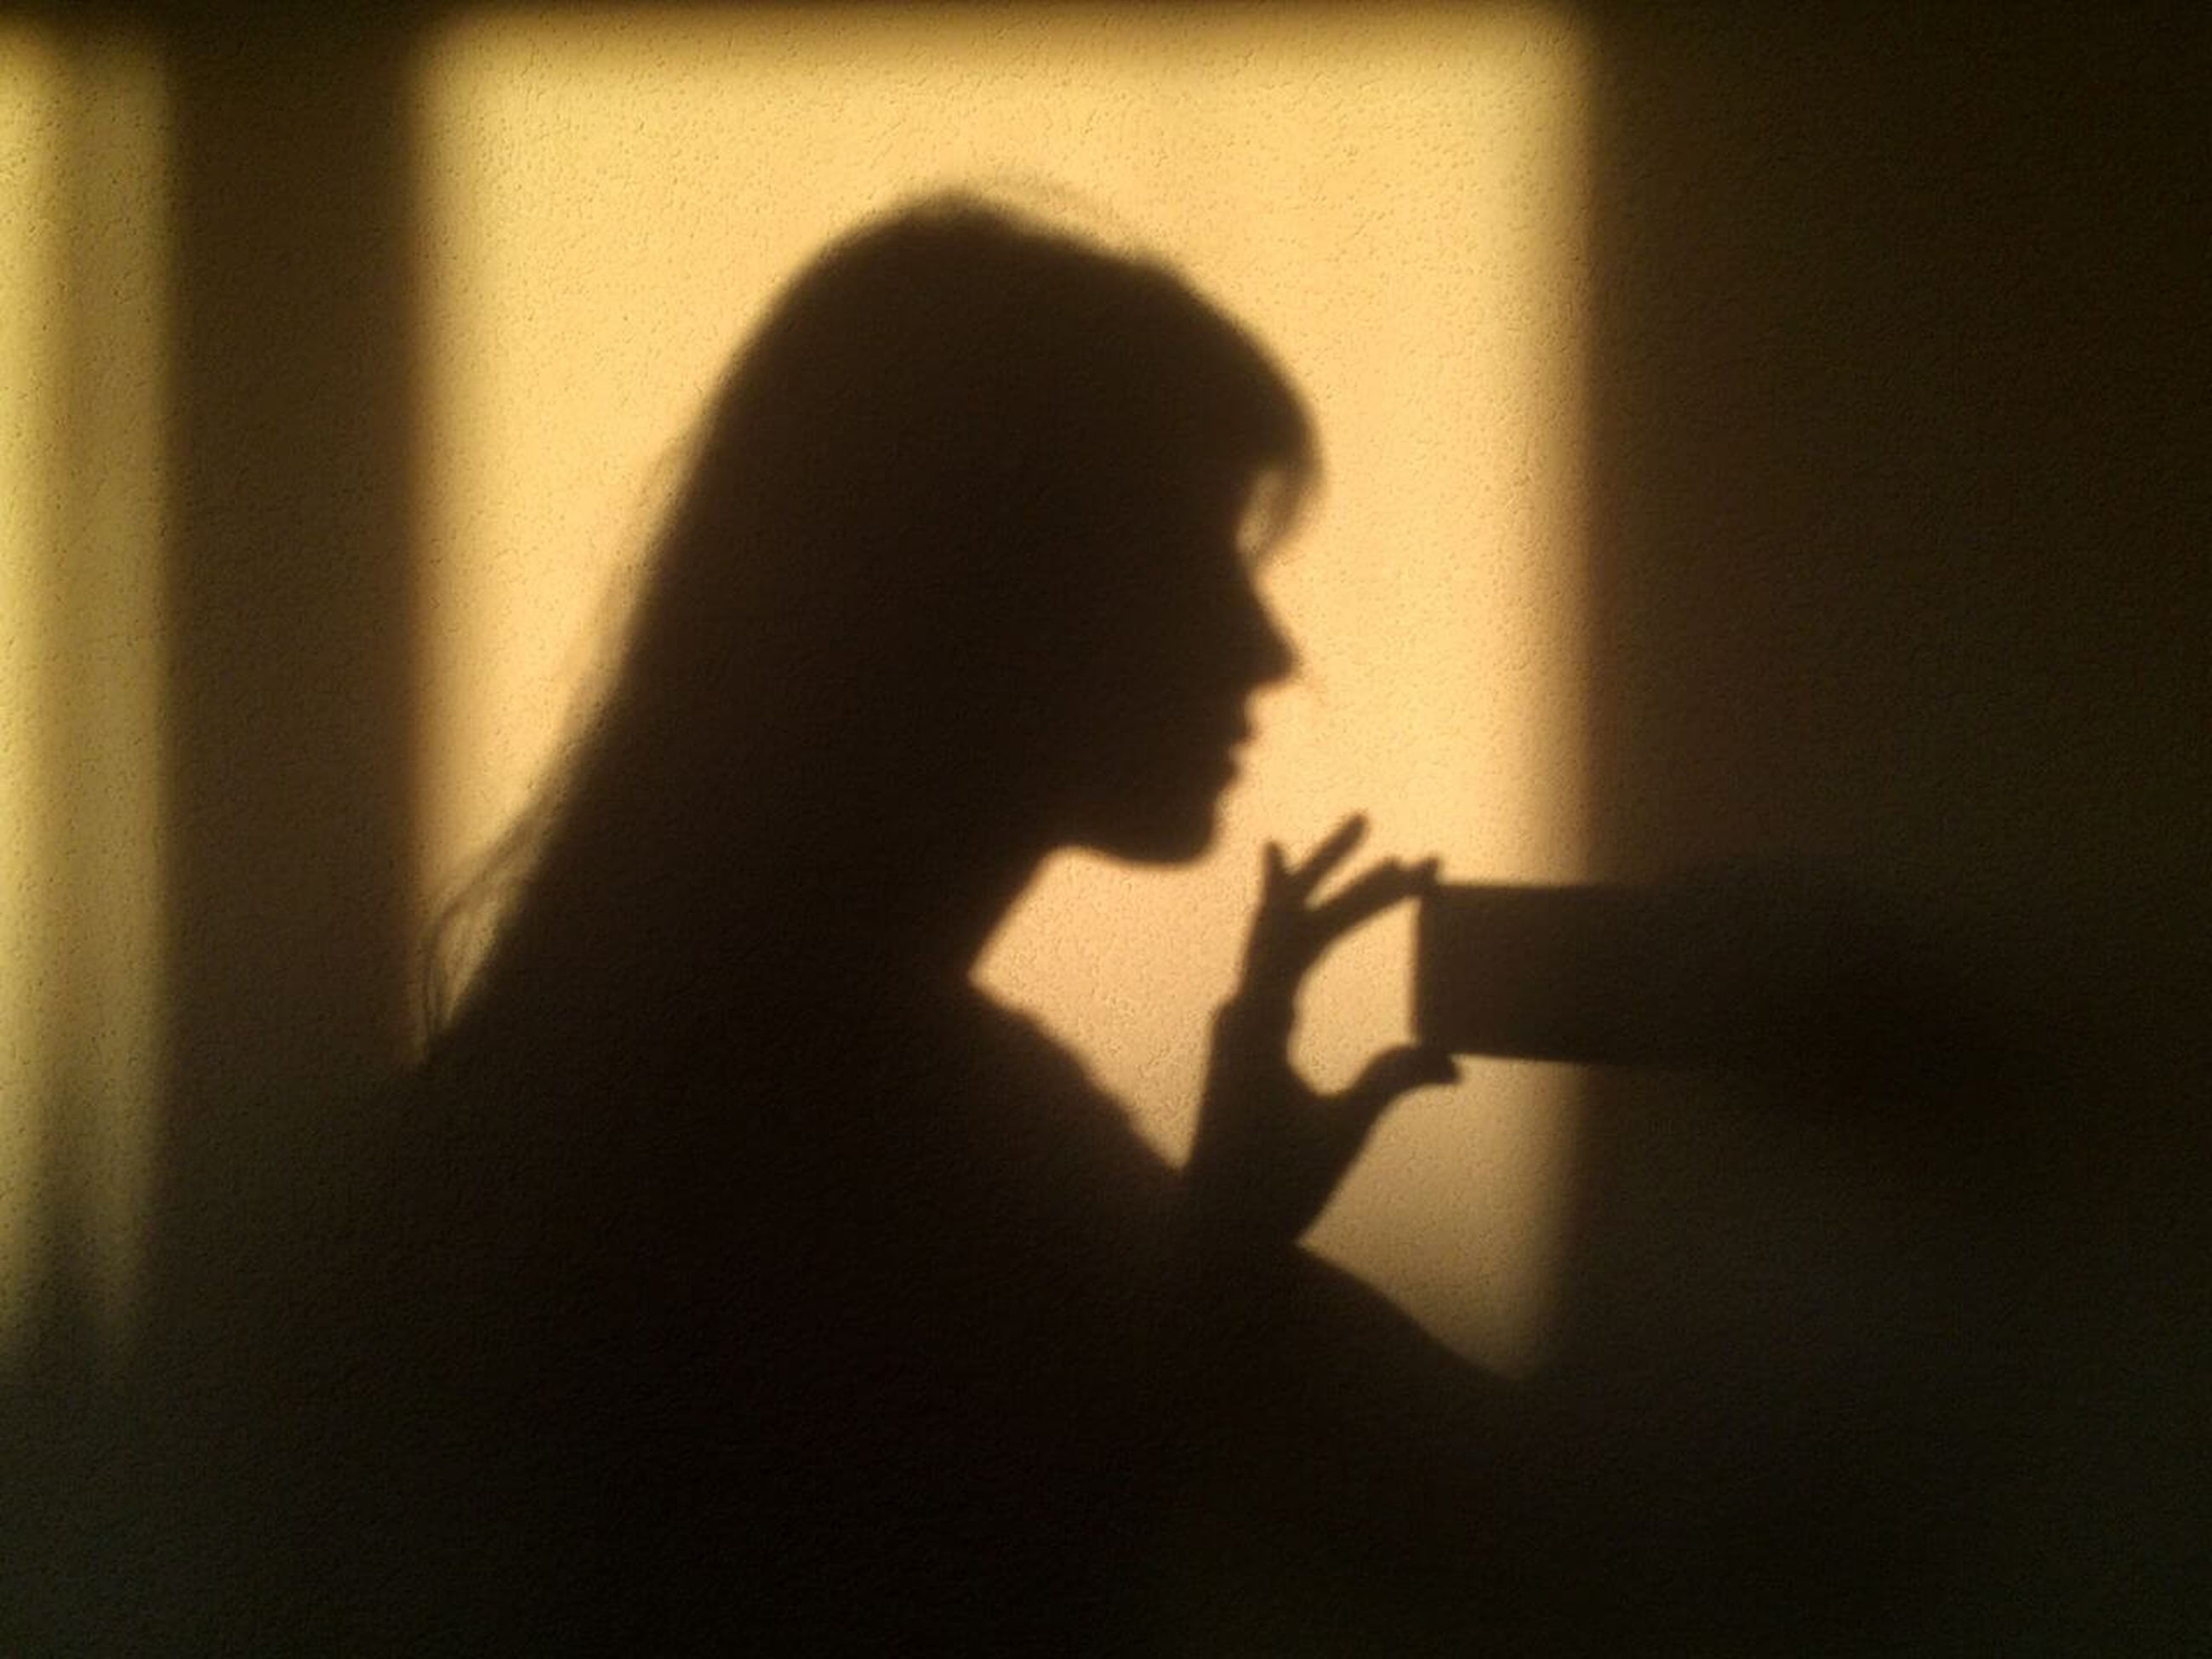 shadow, focus on shadow, indoors, silhouette, one person, sunlight, home interior, real people, women, lifestyles, day, human hand, adult, people